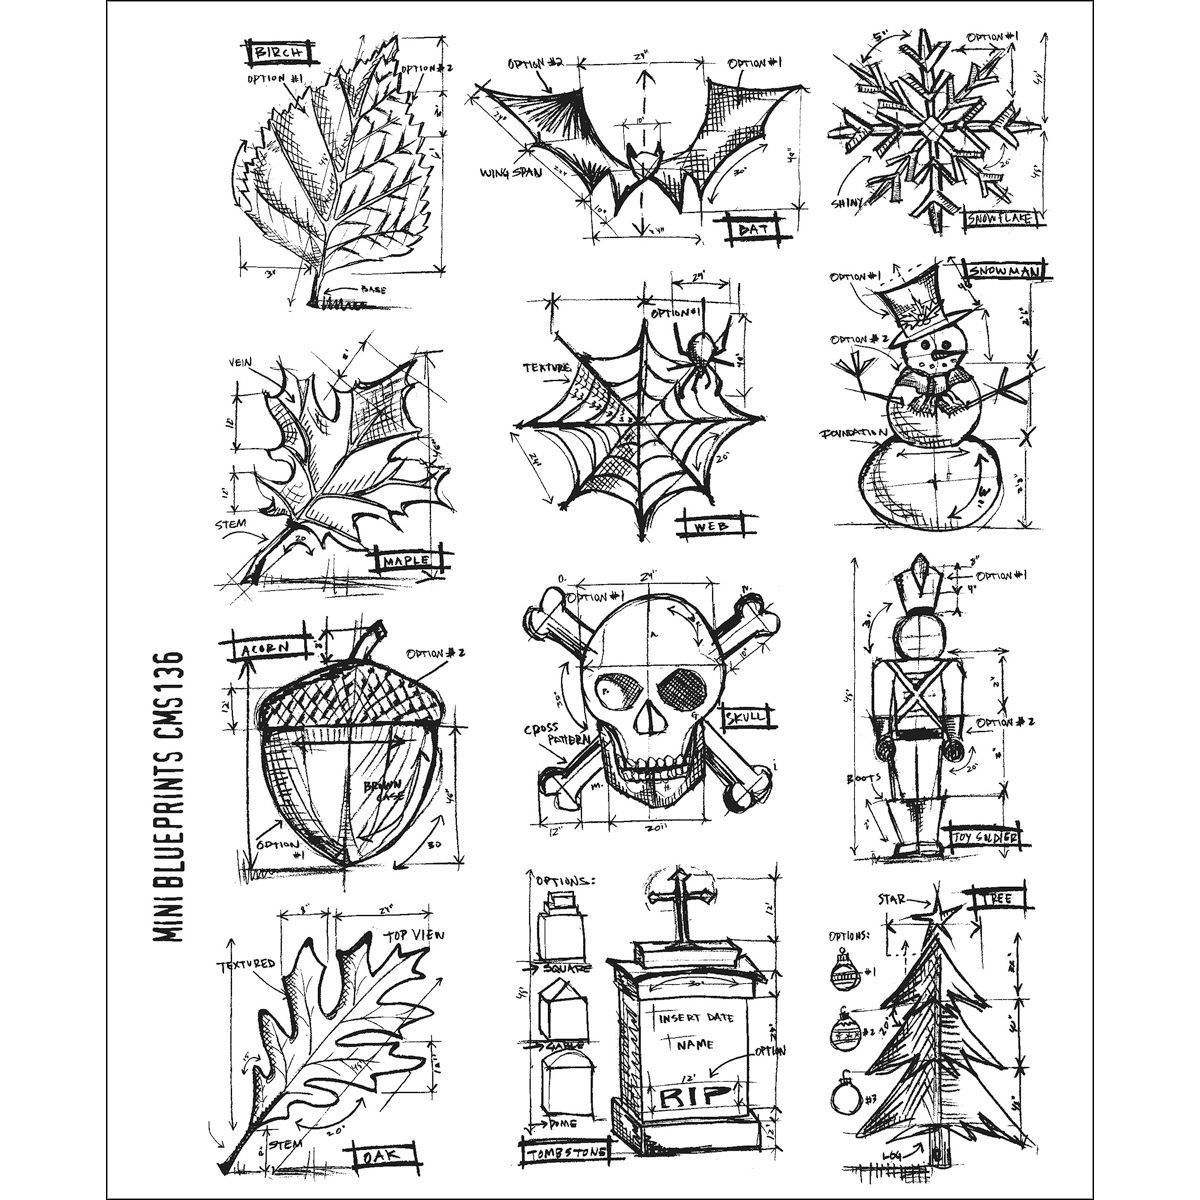 Tim holtz stampers anonymous large cling rubber stamp set mini tim holtz stampers anonymous large cling rubber stamp set mini blueprint paper crafting stamping malvernweather Images